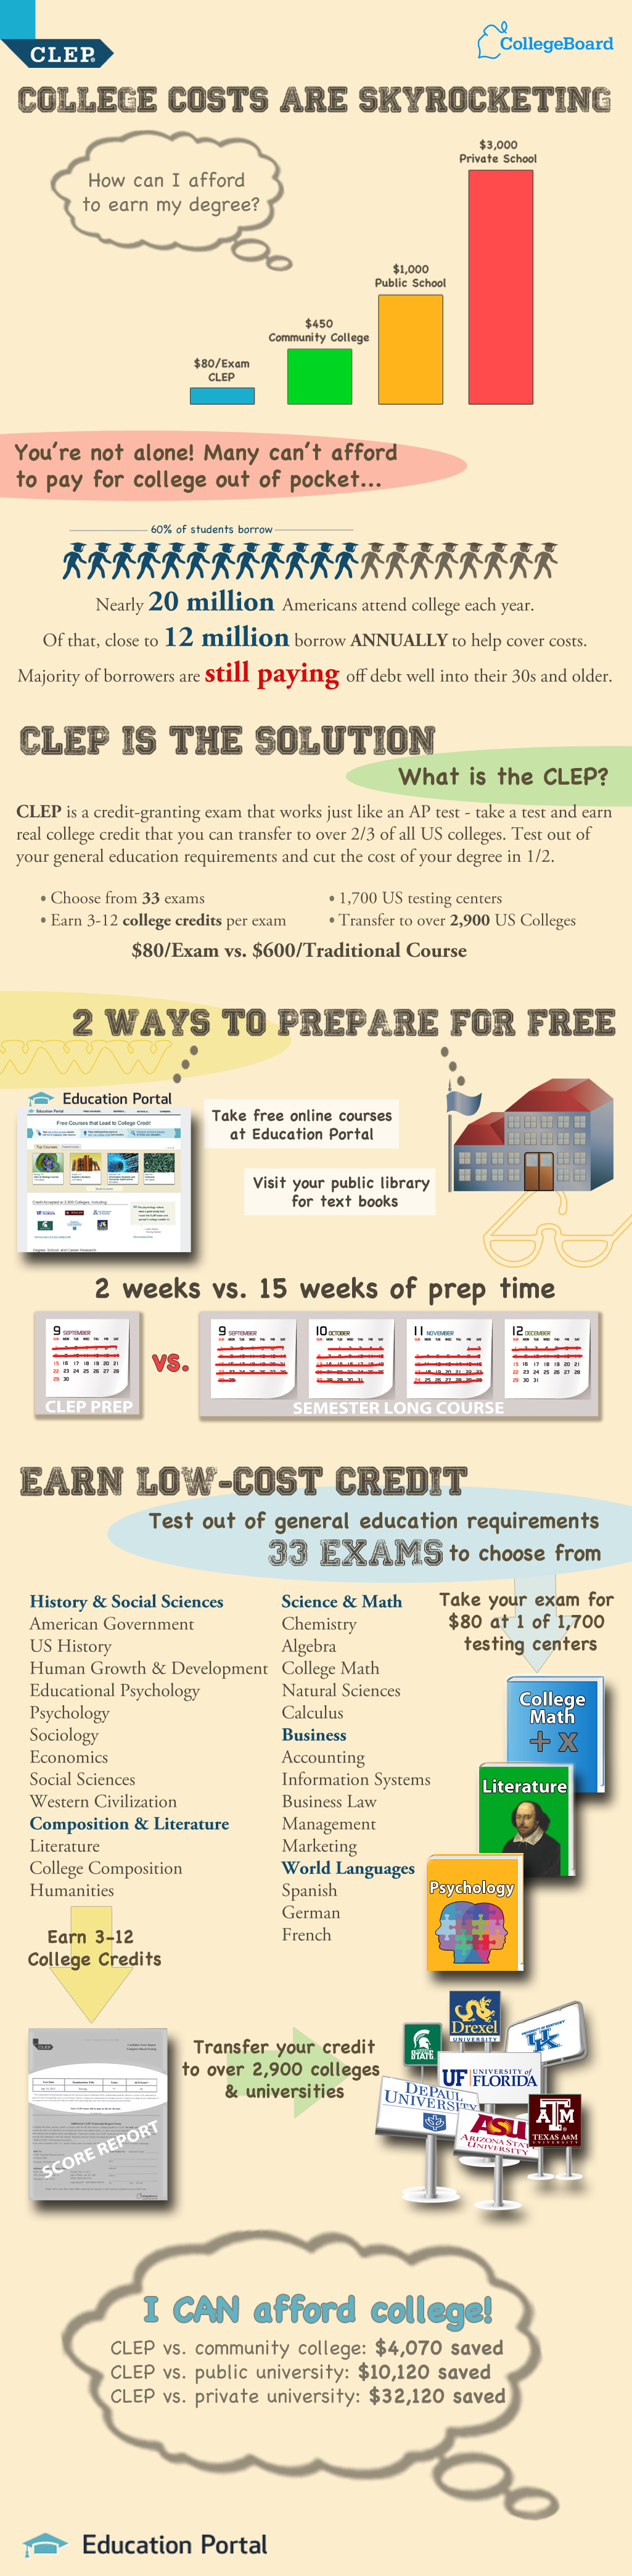 how clep exams work to earn a debt college degree